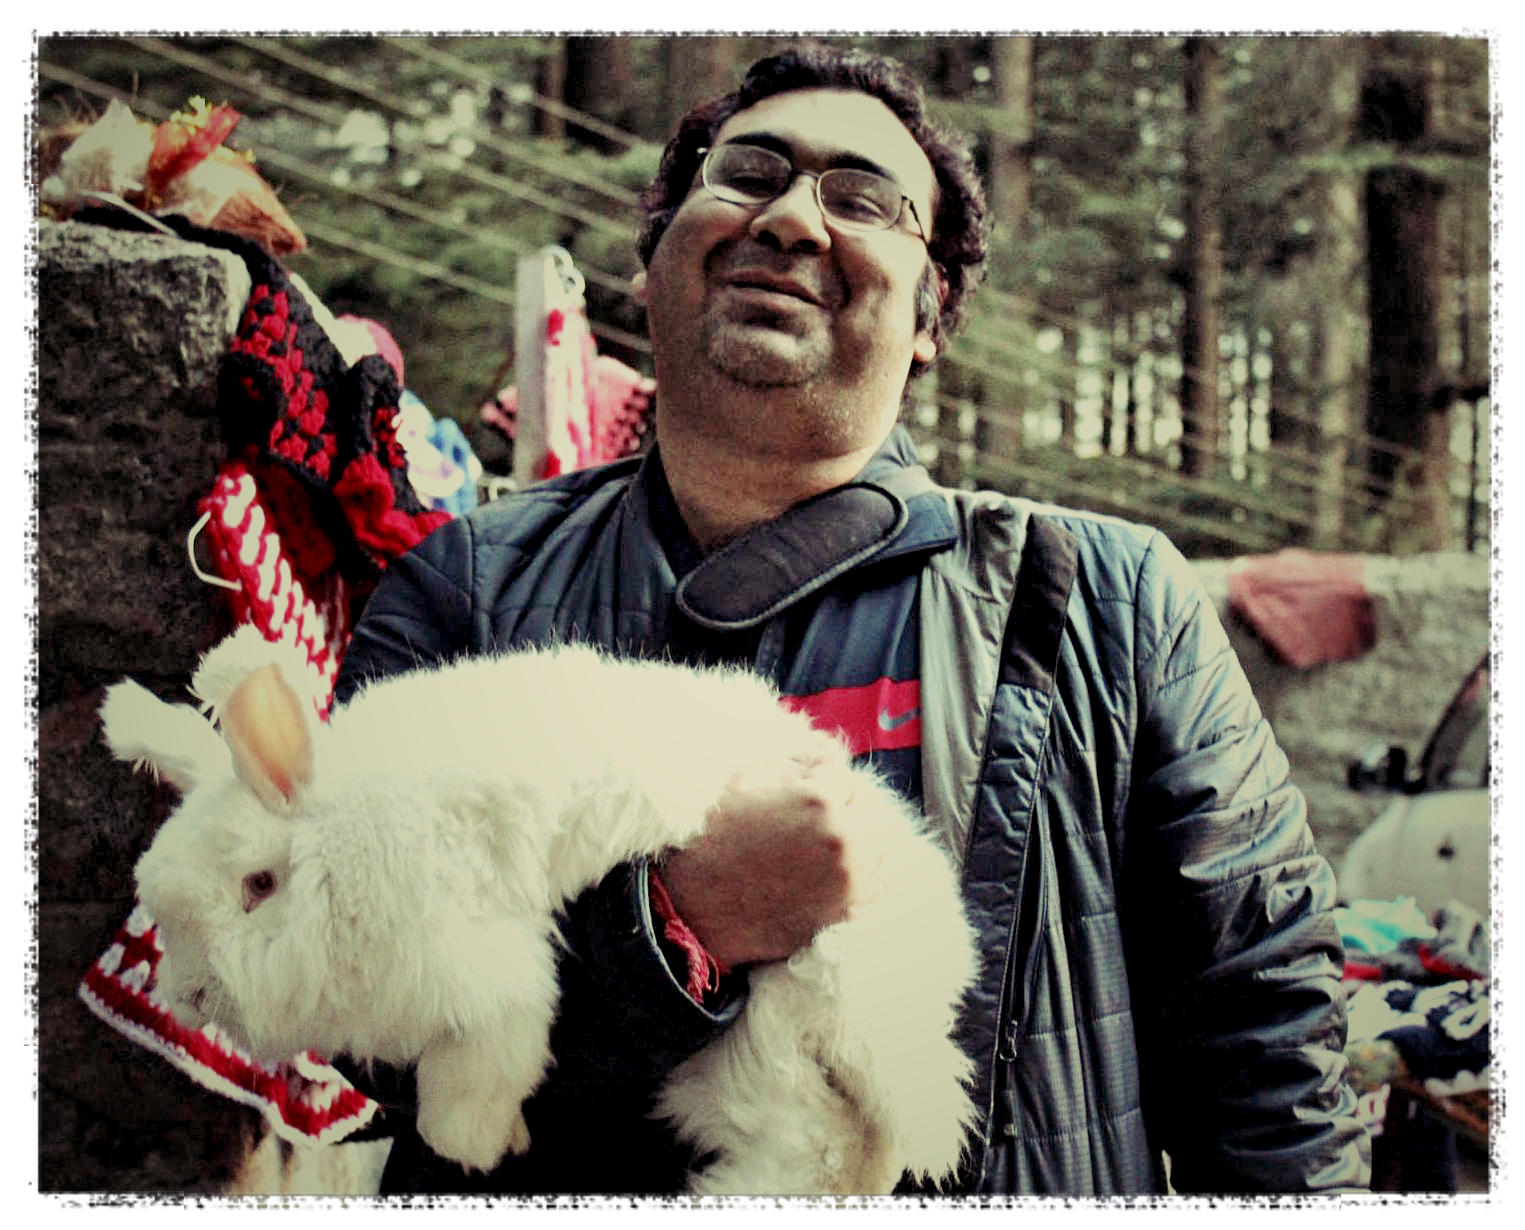 The big furry rabbit & I at the foothills of the Himalayas